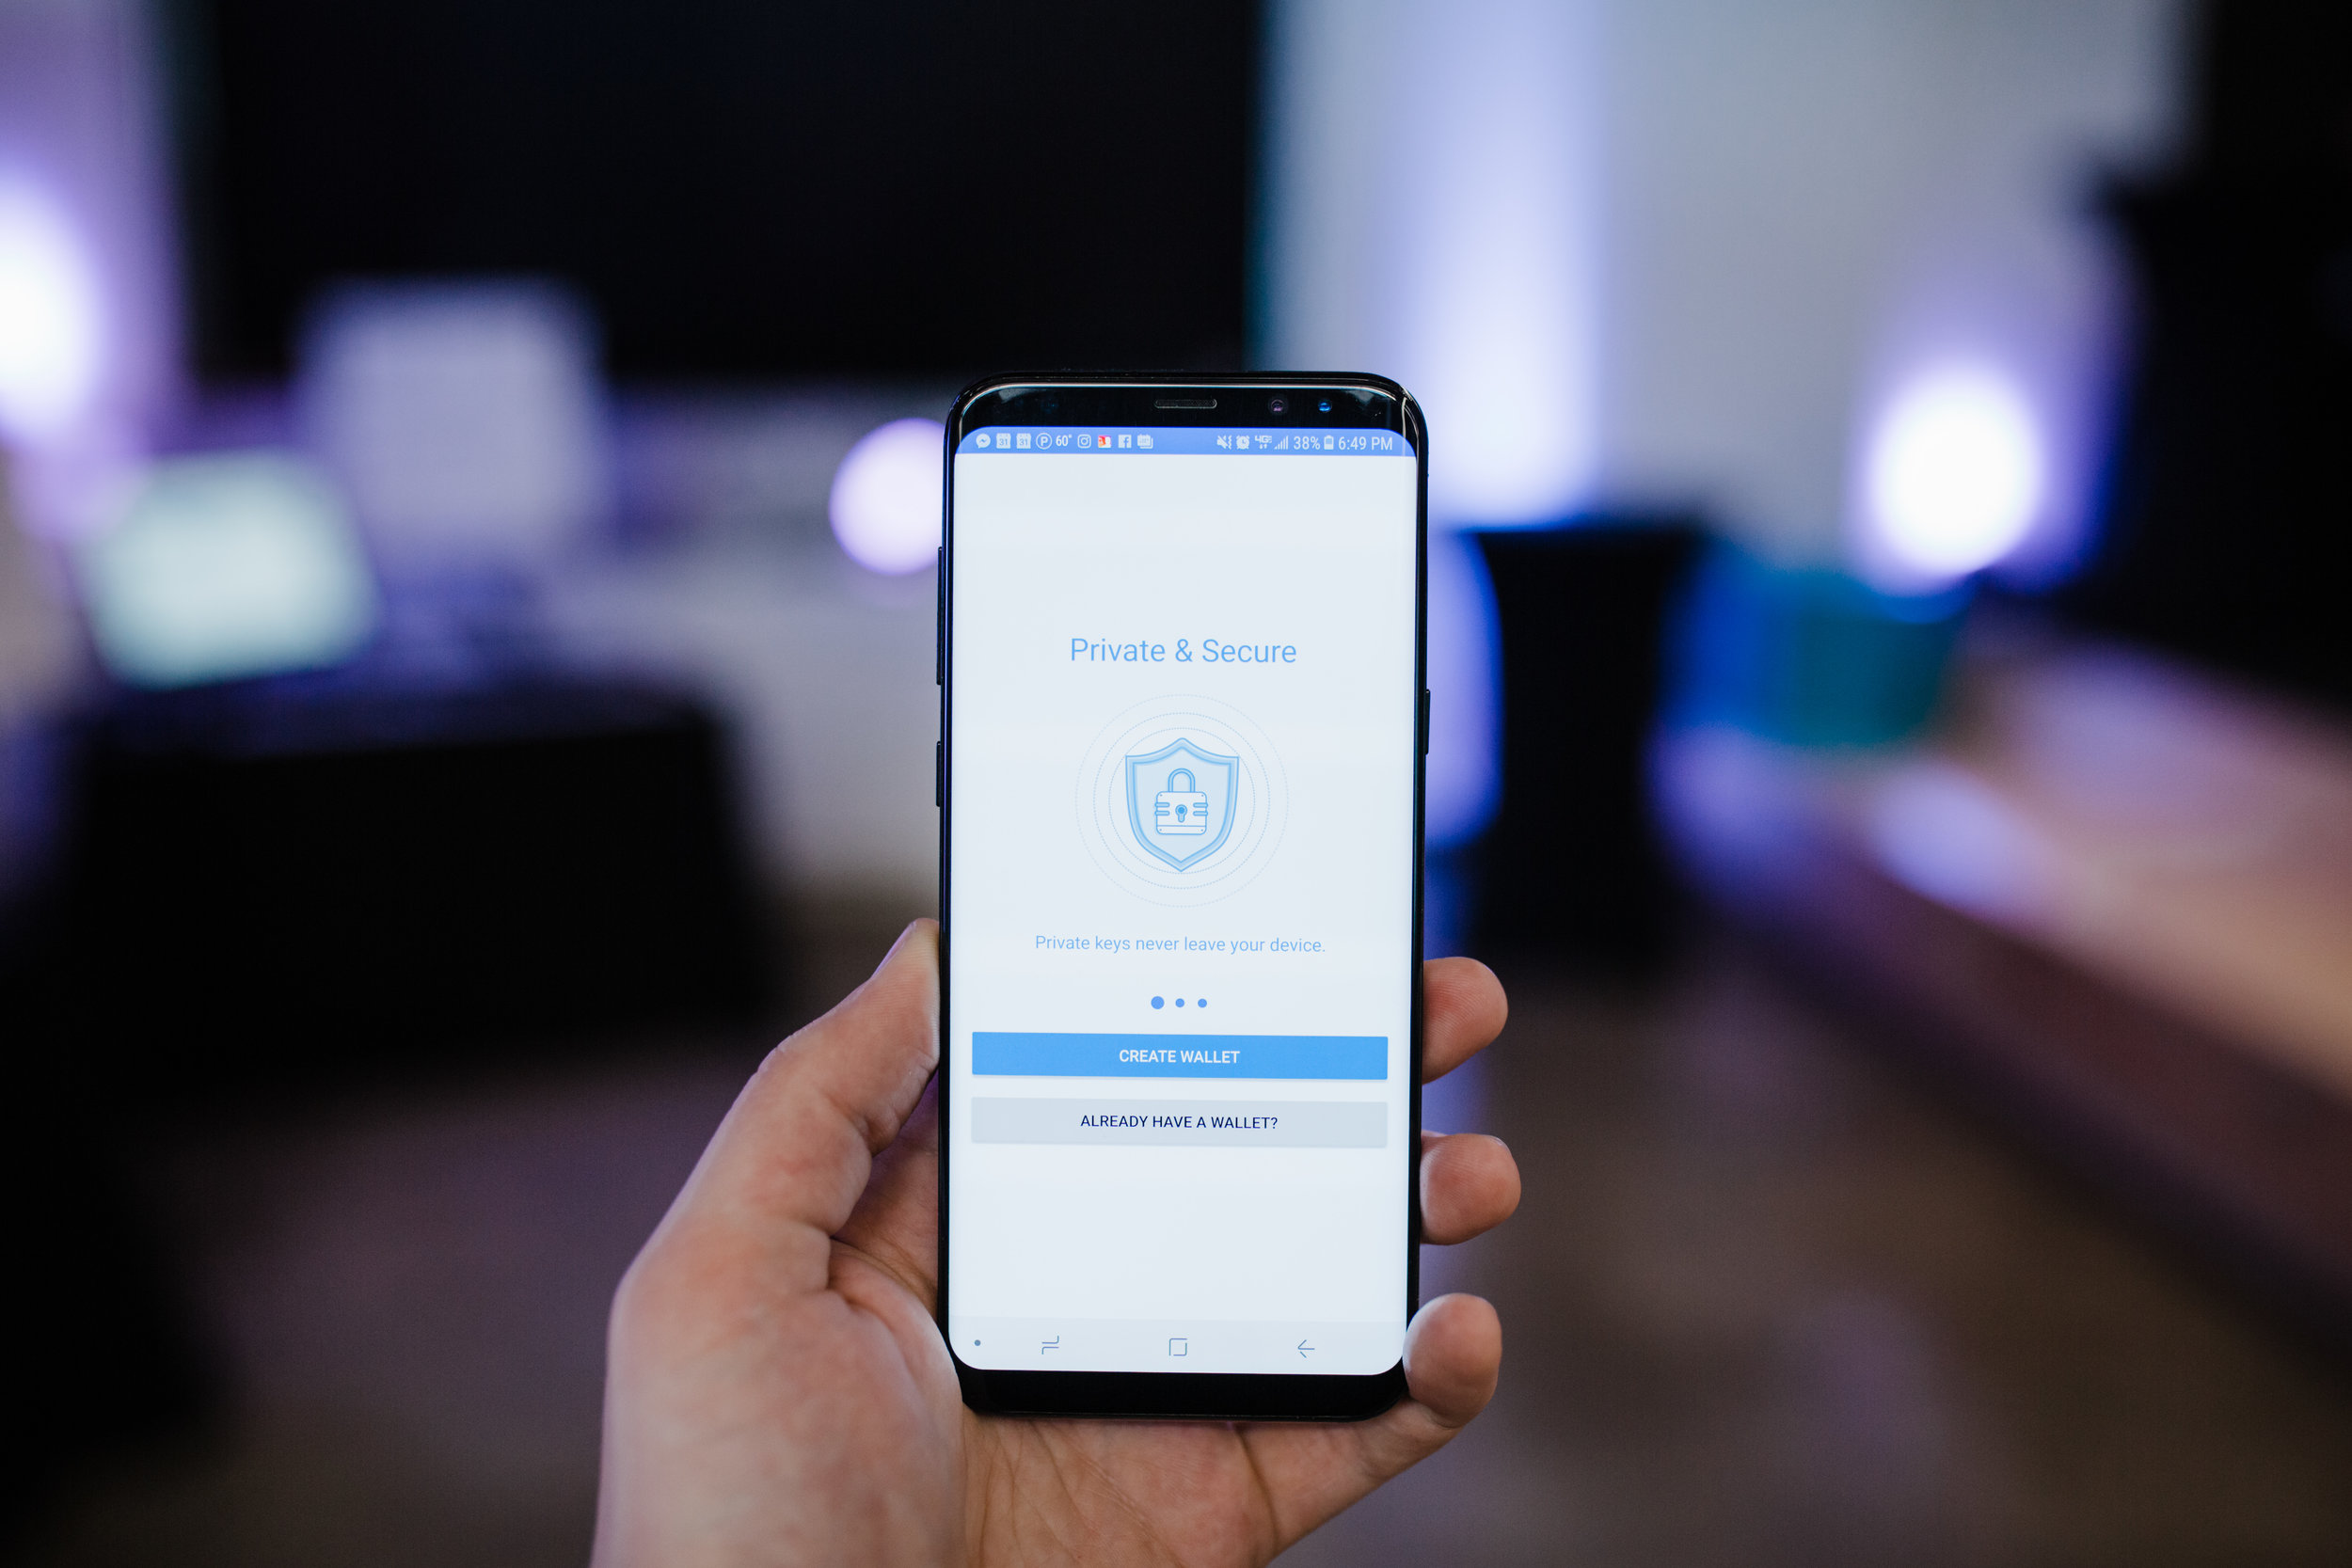 The Trust Wallet app used for the event.